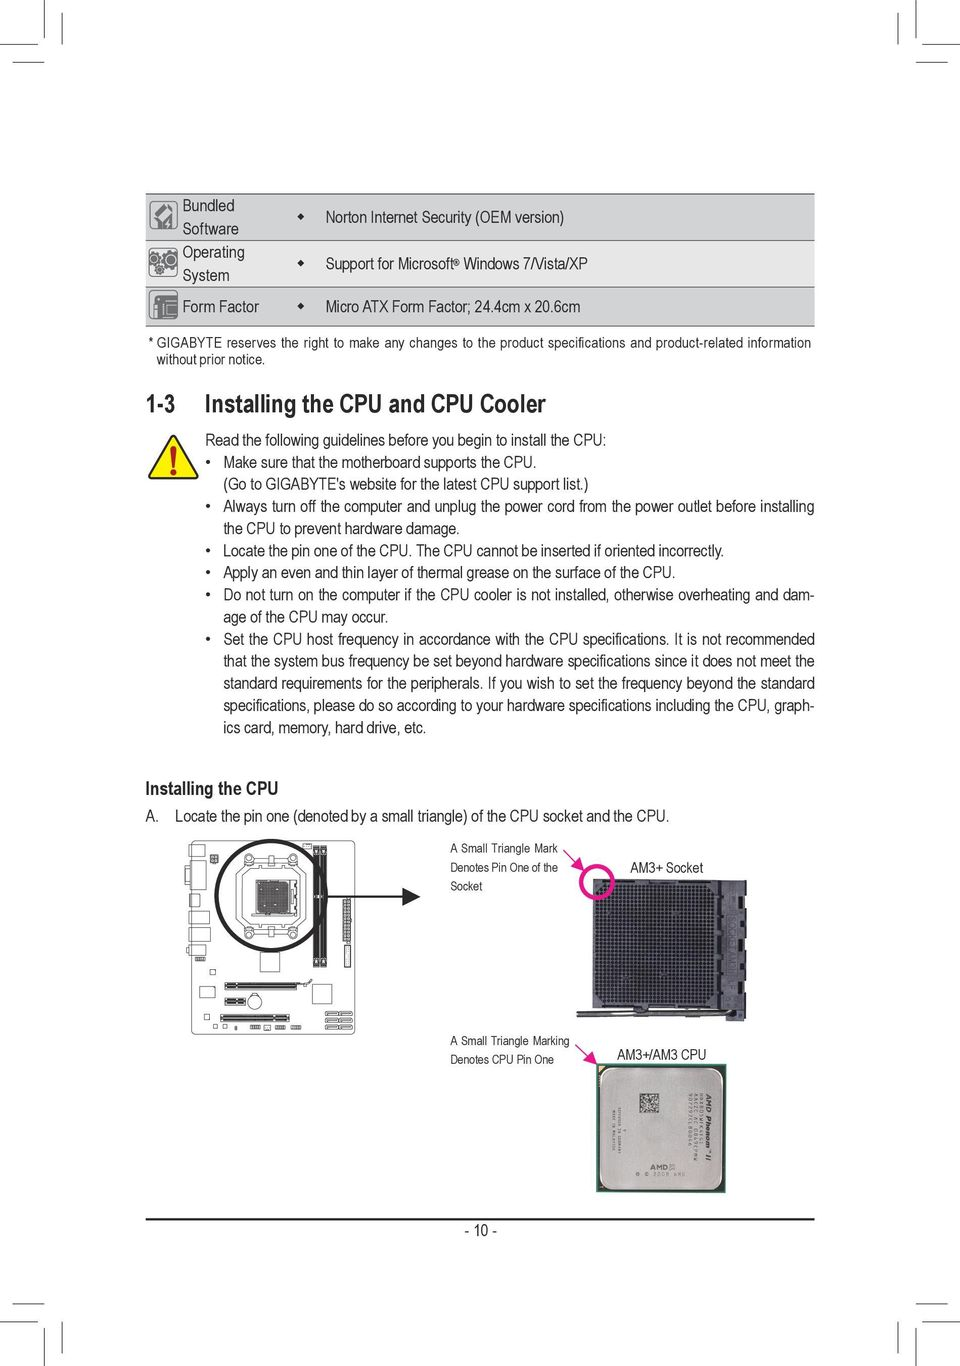 1-3 Installing the CPU and CPU Cooler Read the following guidelines before you begin to install the CPU: Make sure that the motherboard supports the CPU.